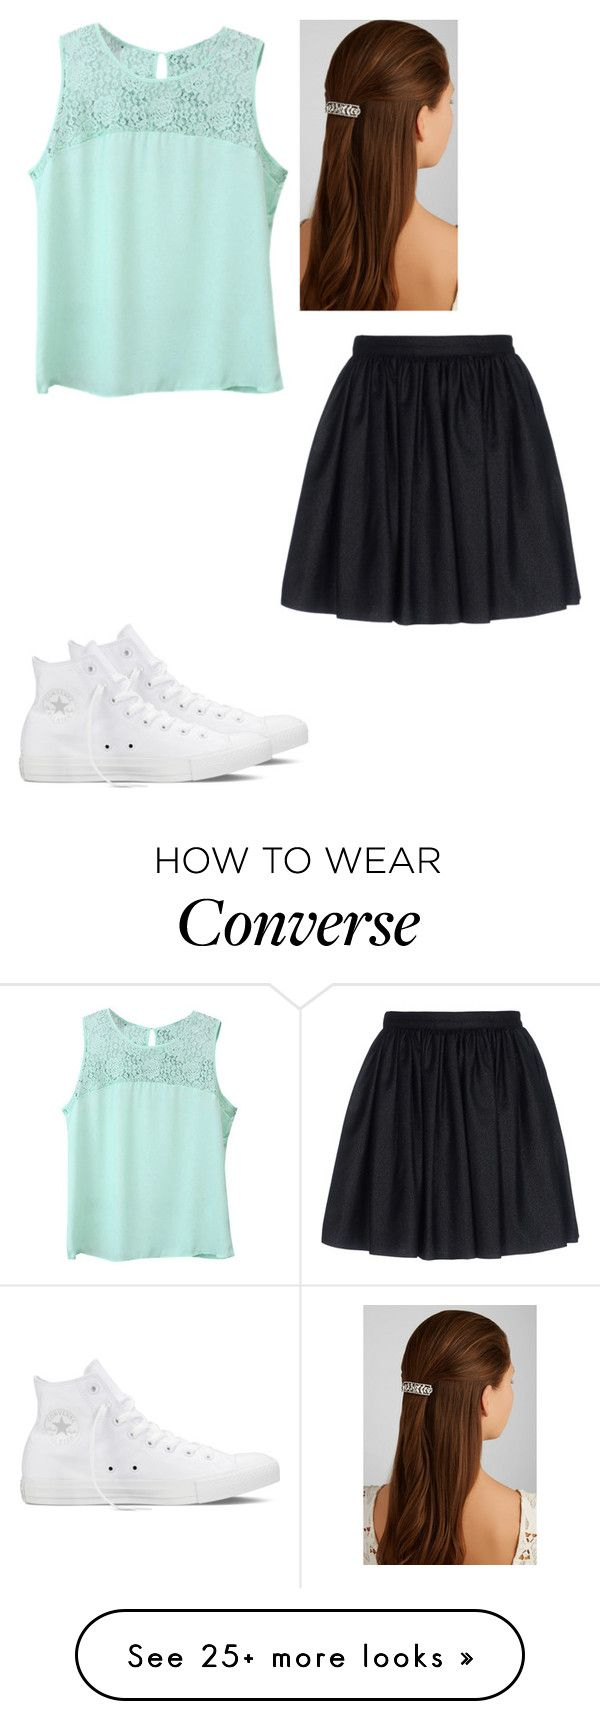 """Untitled #84"" by hannahmcpherson12 on Polyvore featuring Jennifer Behr, Converse and Mauro Grifoni"